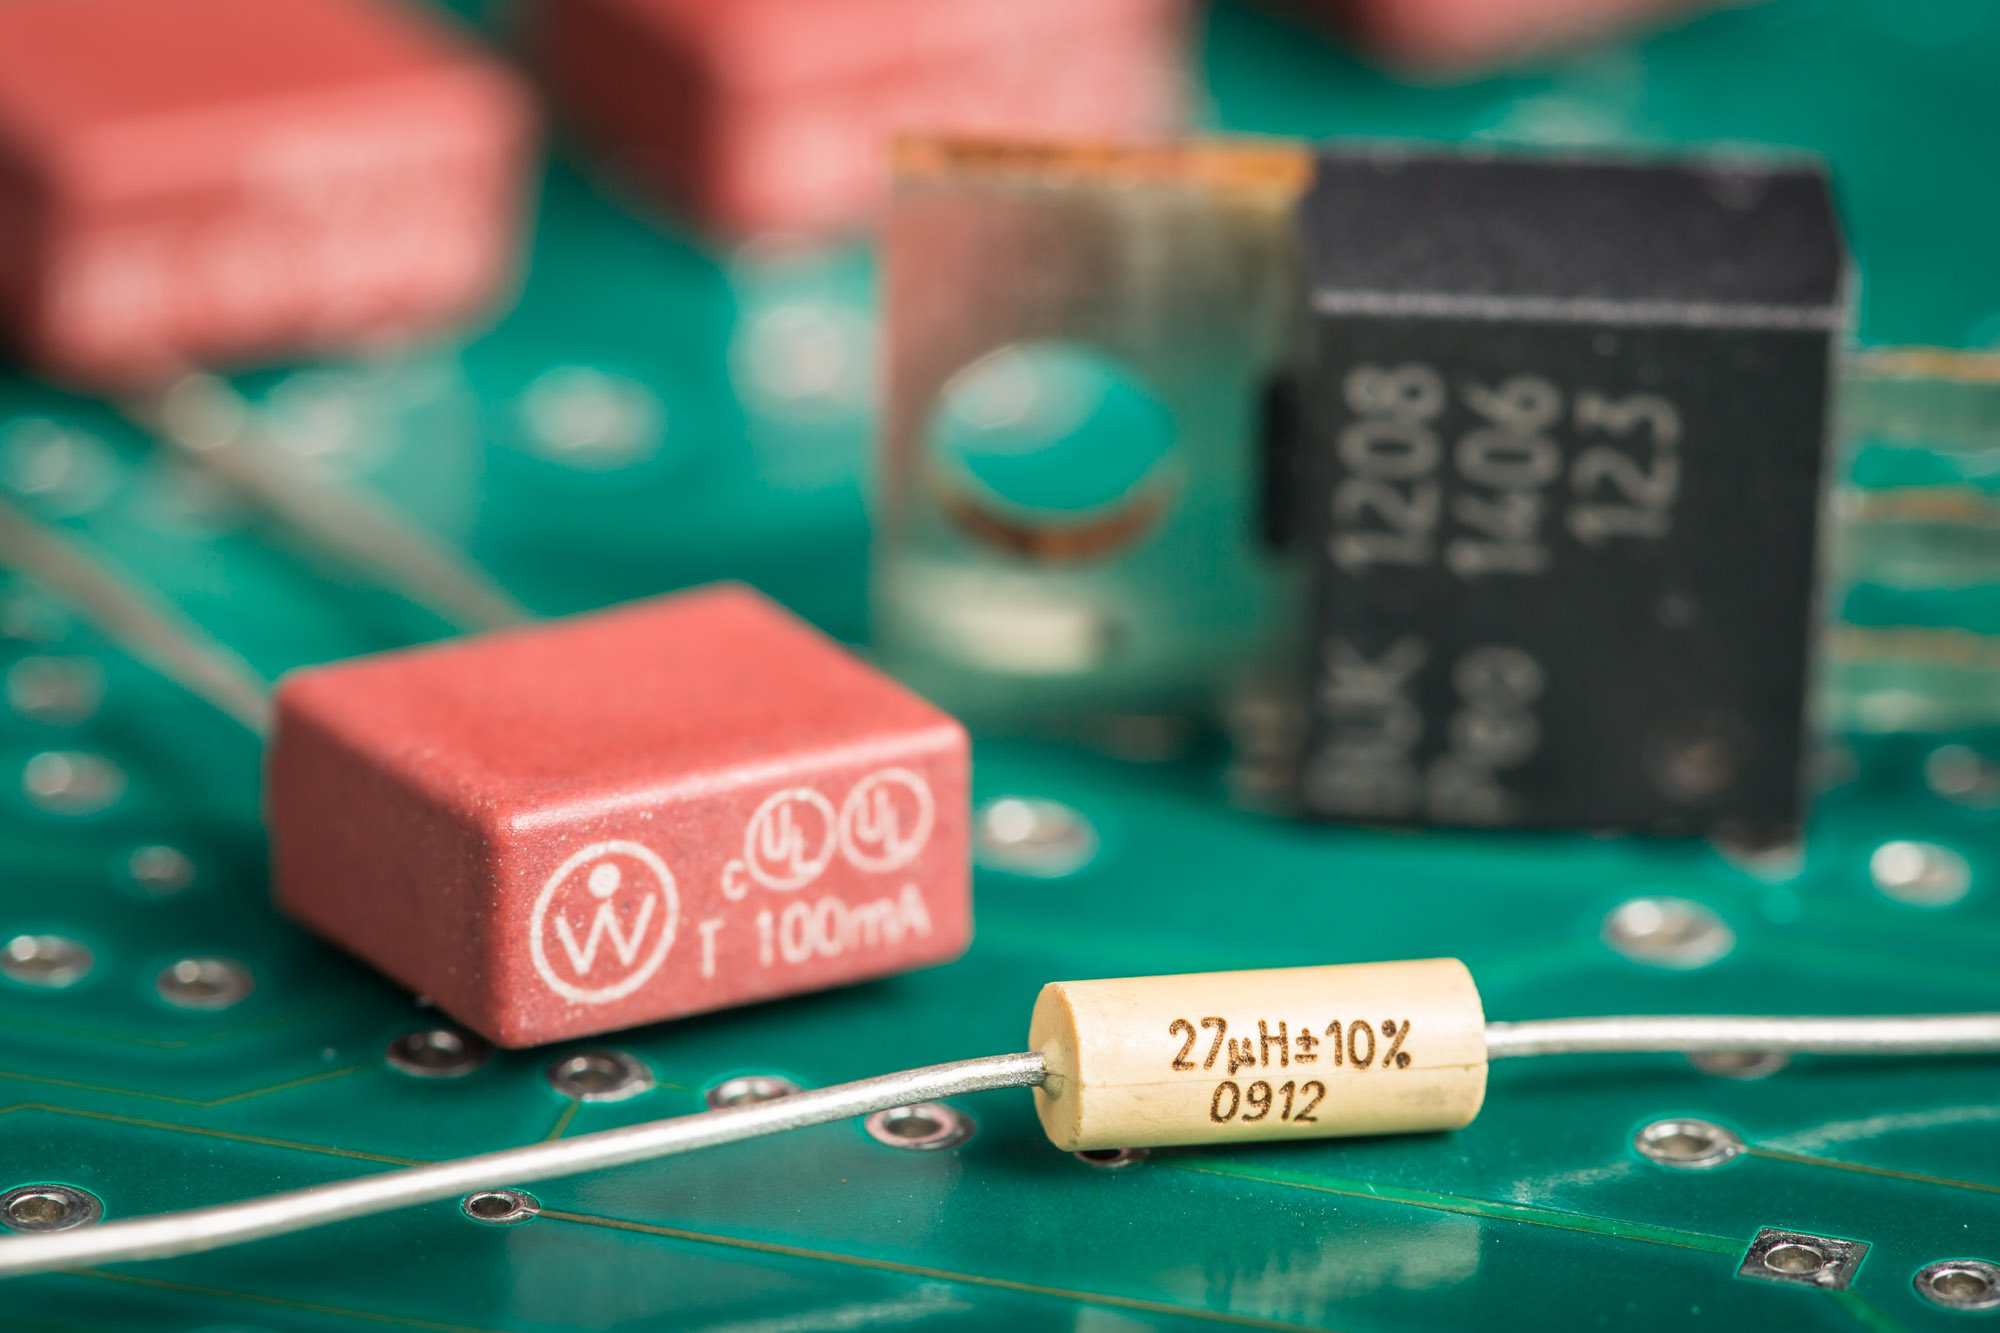 Laser-marked electronic components